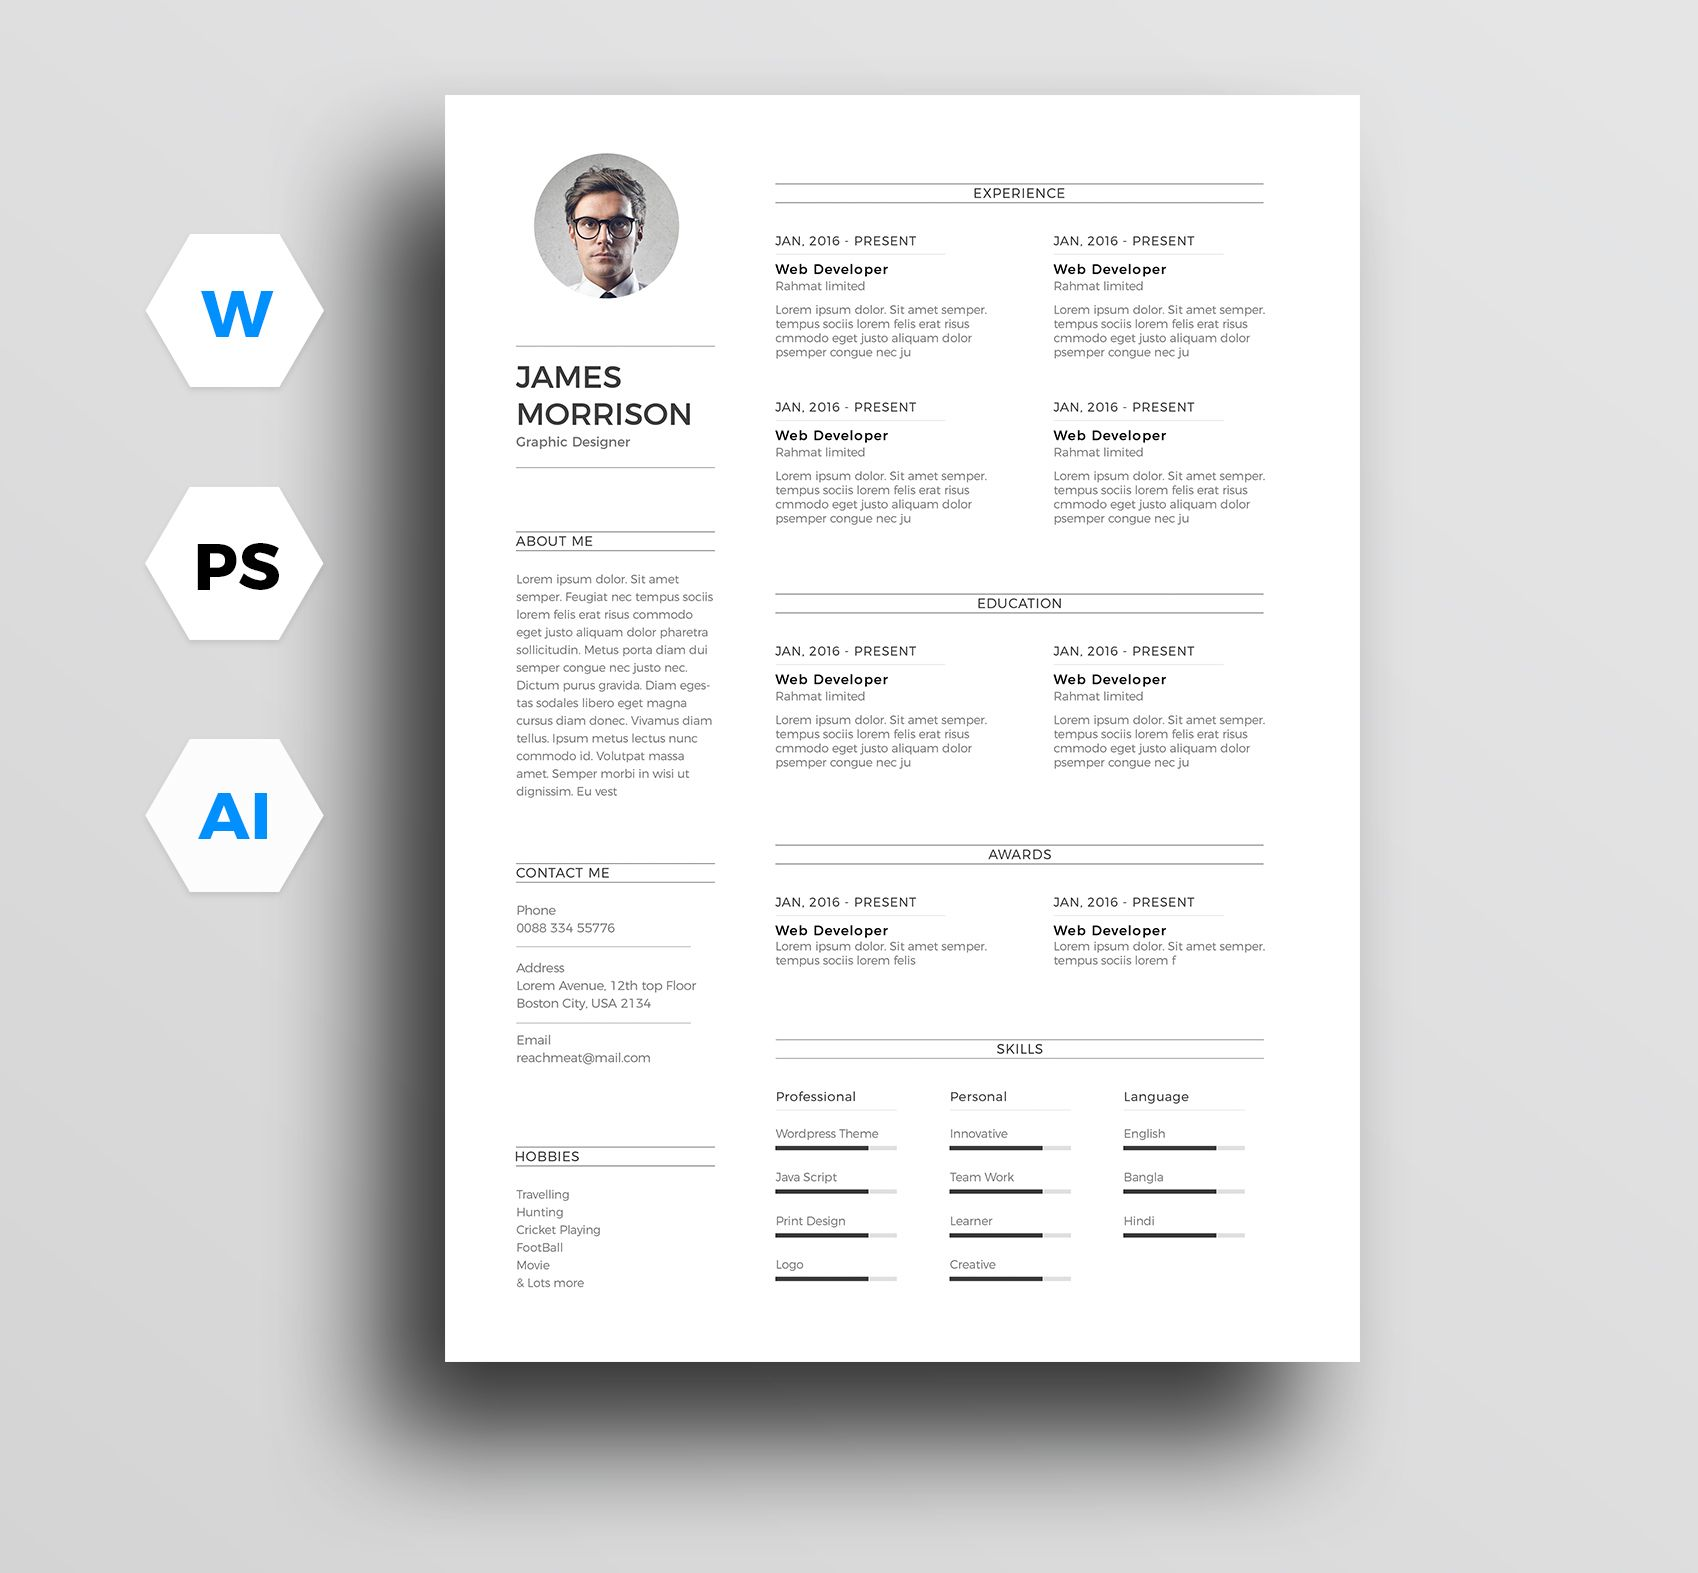 check out my behance project free minimal resume template cv in word and https best Resume Free Minimalist Resume Template Word